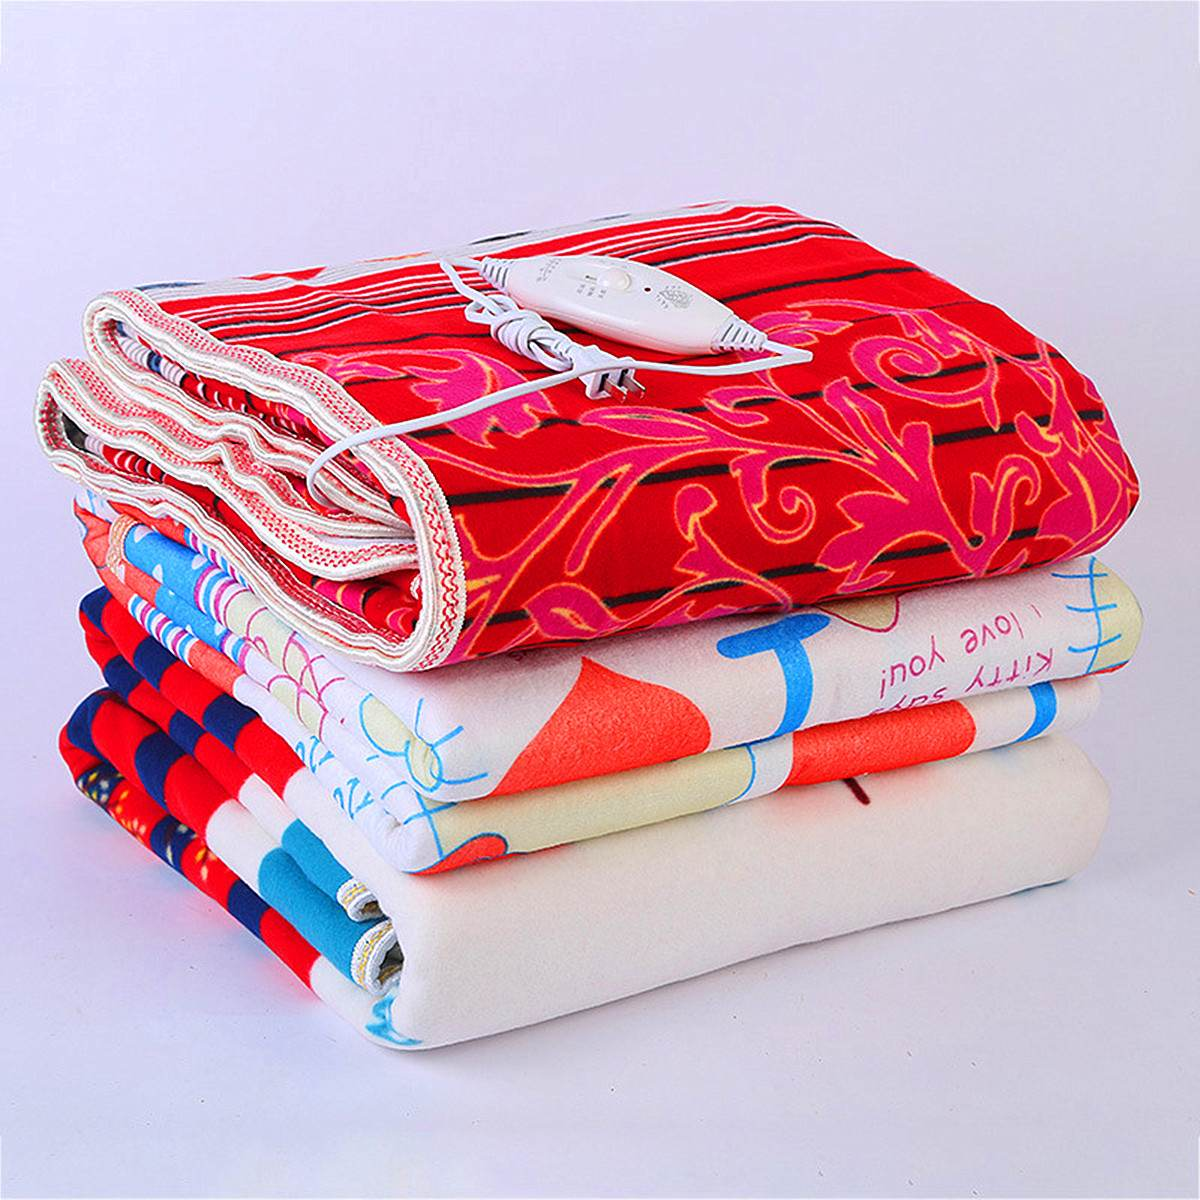 220V Electric Blanket Non-woven Fabric Electric Heating Blanket Single/Double Heated Blanket Printing Electrique Carpet Heated